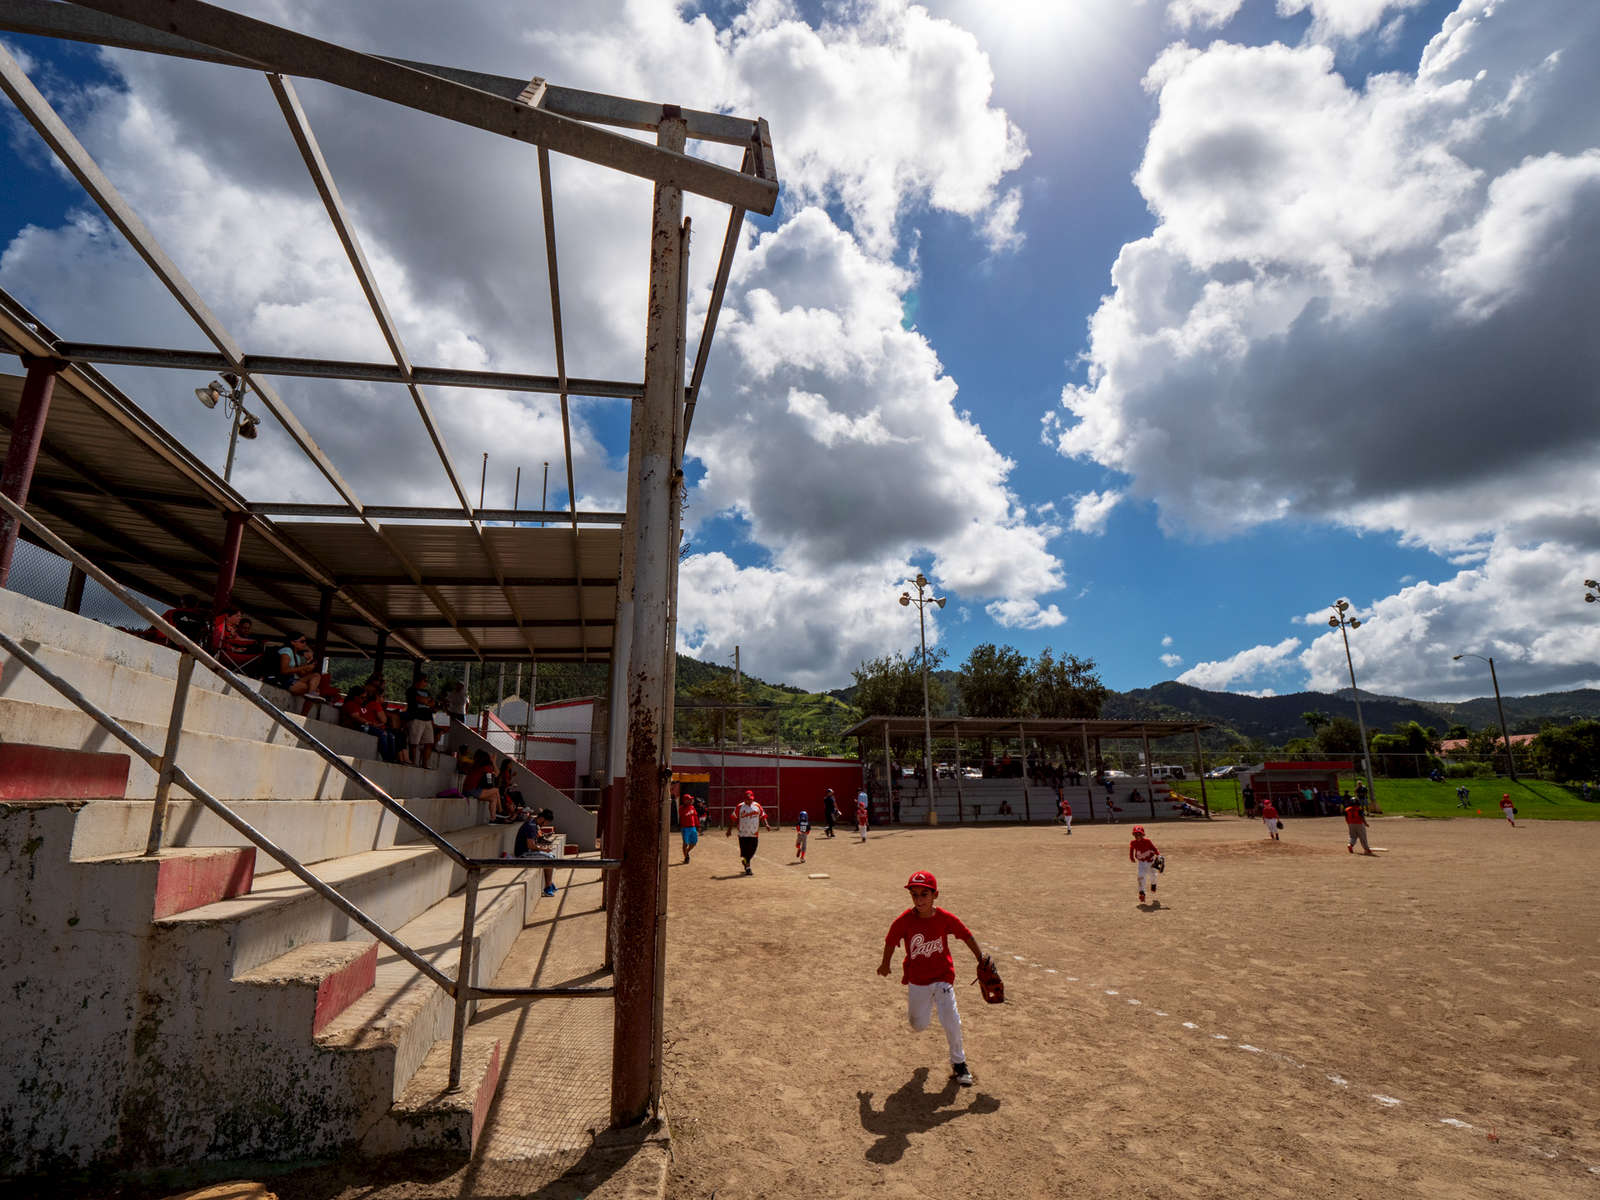 CAYEY, PUERTO RICO - NOVEMBER 10:  Fans watch children  compete in a Little League baseball game under a damaged roof caused by Hurricane Maria on November 10, 2018 in Cayey, Puerto Rico. The effort continues in Puerto Rico to remain and rebuild more than one year after the Hurricane Maria hit and devastated the island on September 20, 2017. The official number of deaths from the disaster is 2,975.